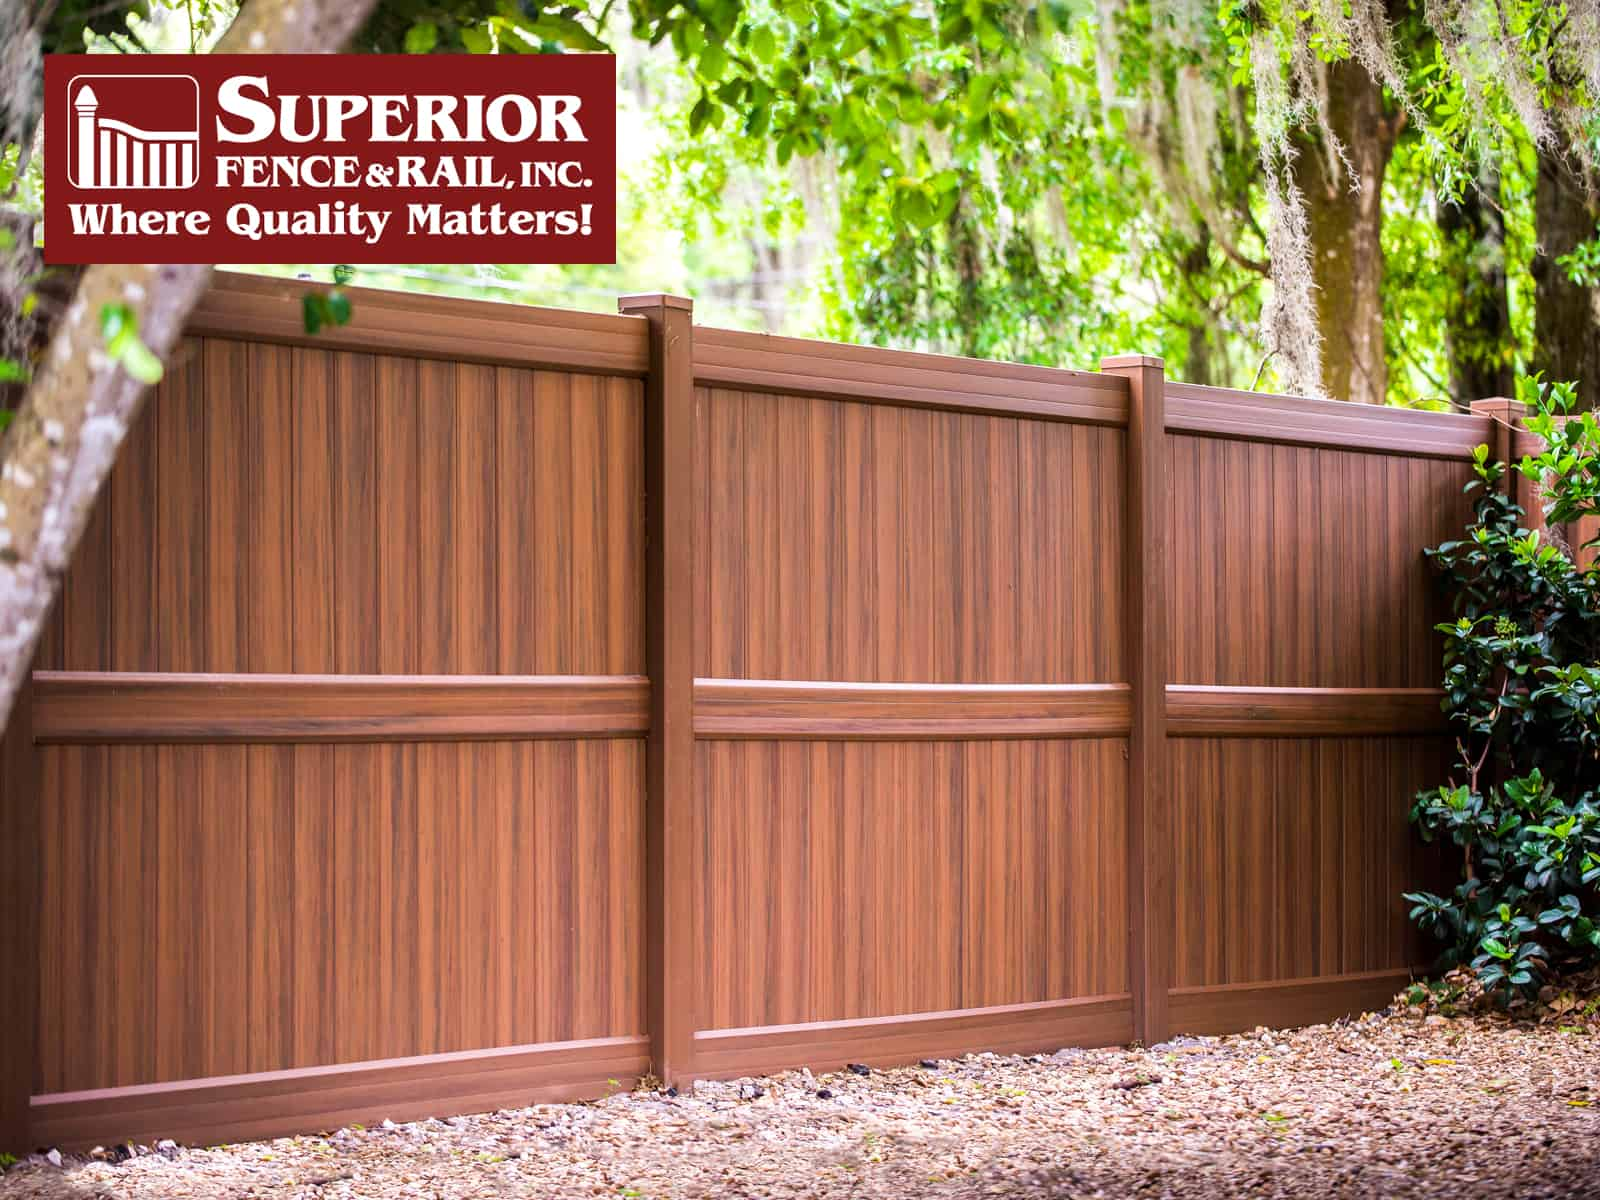 https://www.superiorfenceandrail.com/wp-content/uploads/2020/12/Evergreen-Fence-Company-Contractor.jpg